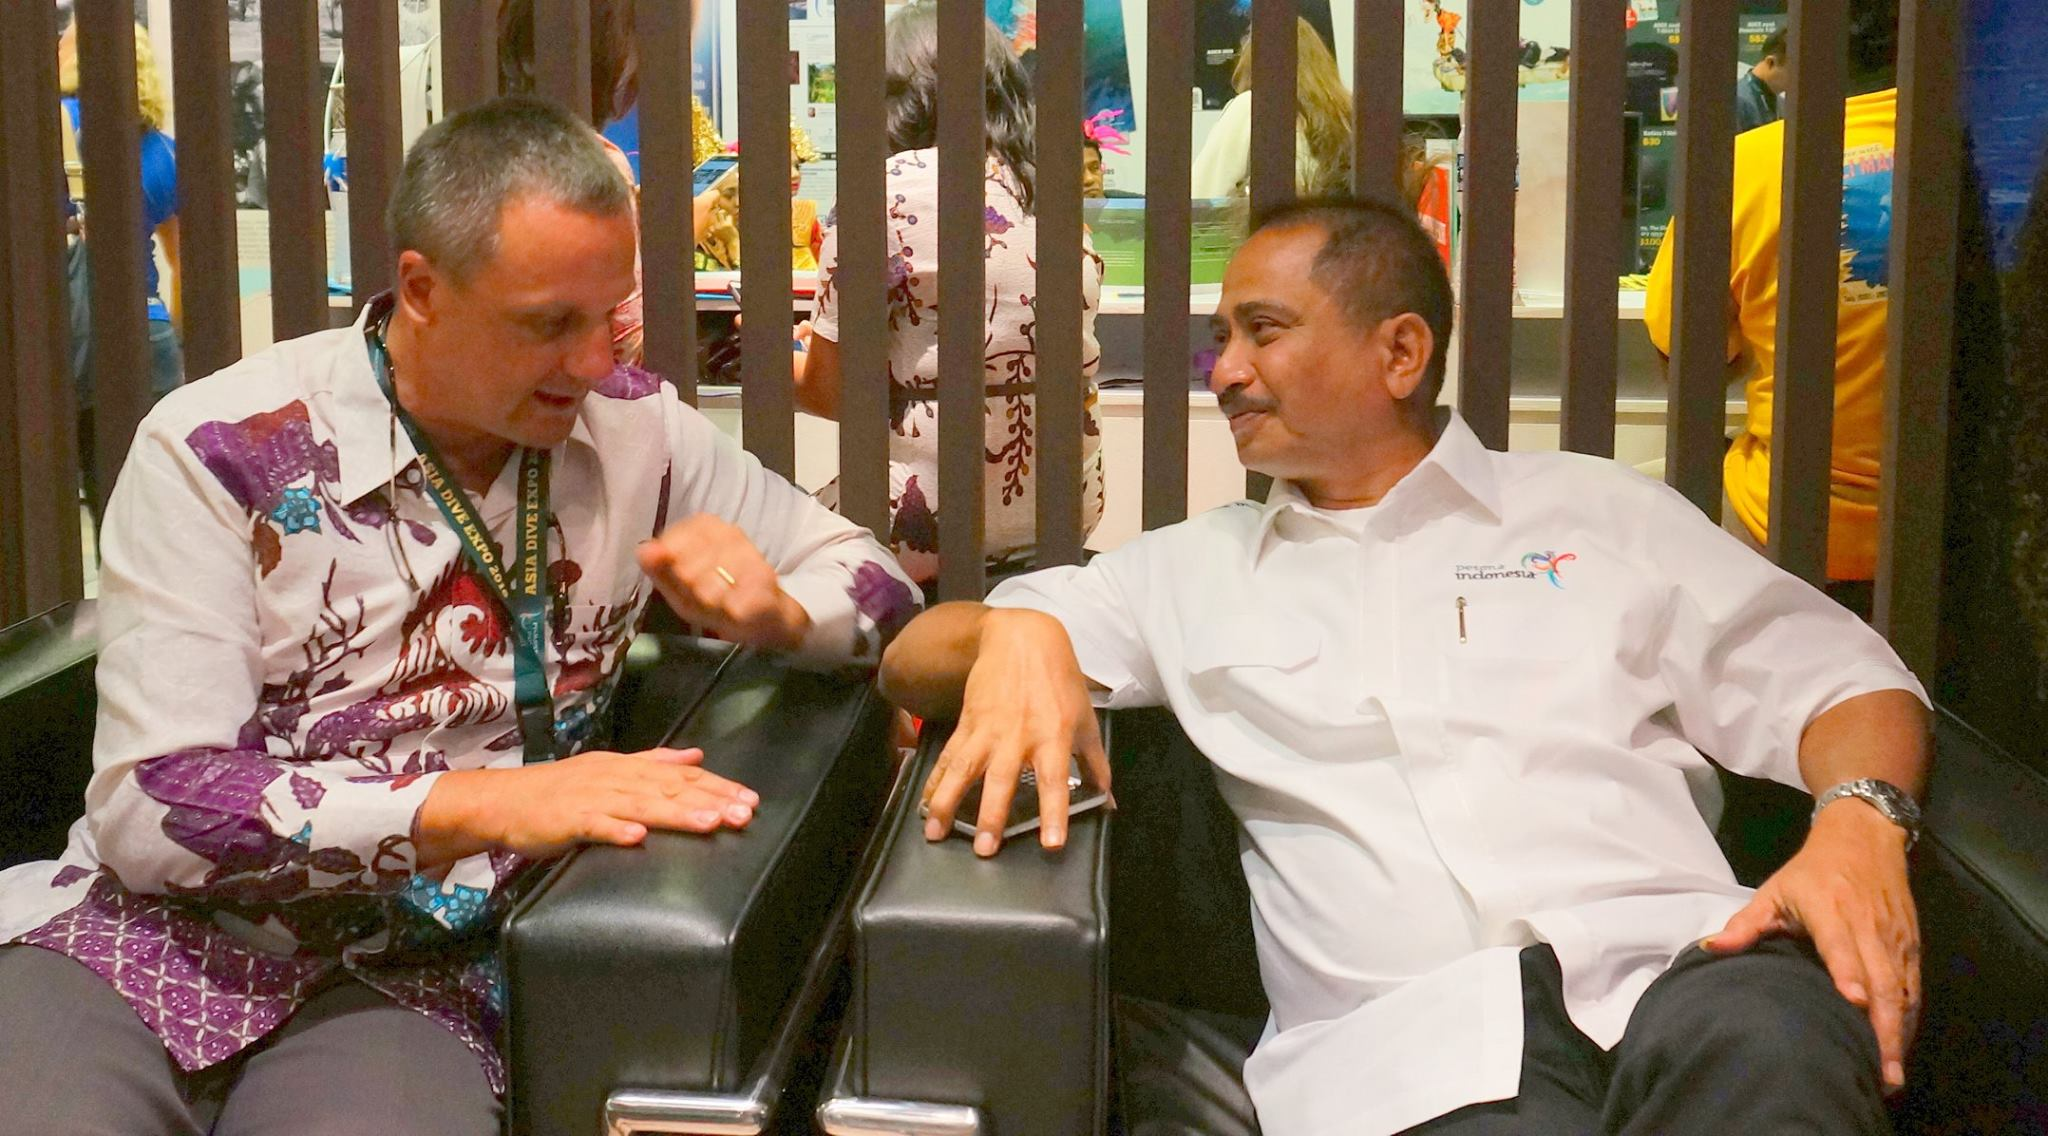 With his excellency Bapak Arief Yahya, Minister of Tourism, Republic of Indonesia